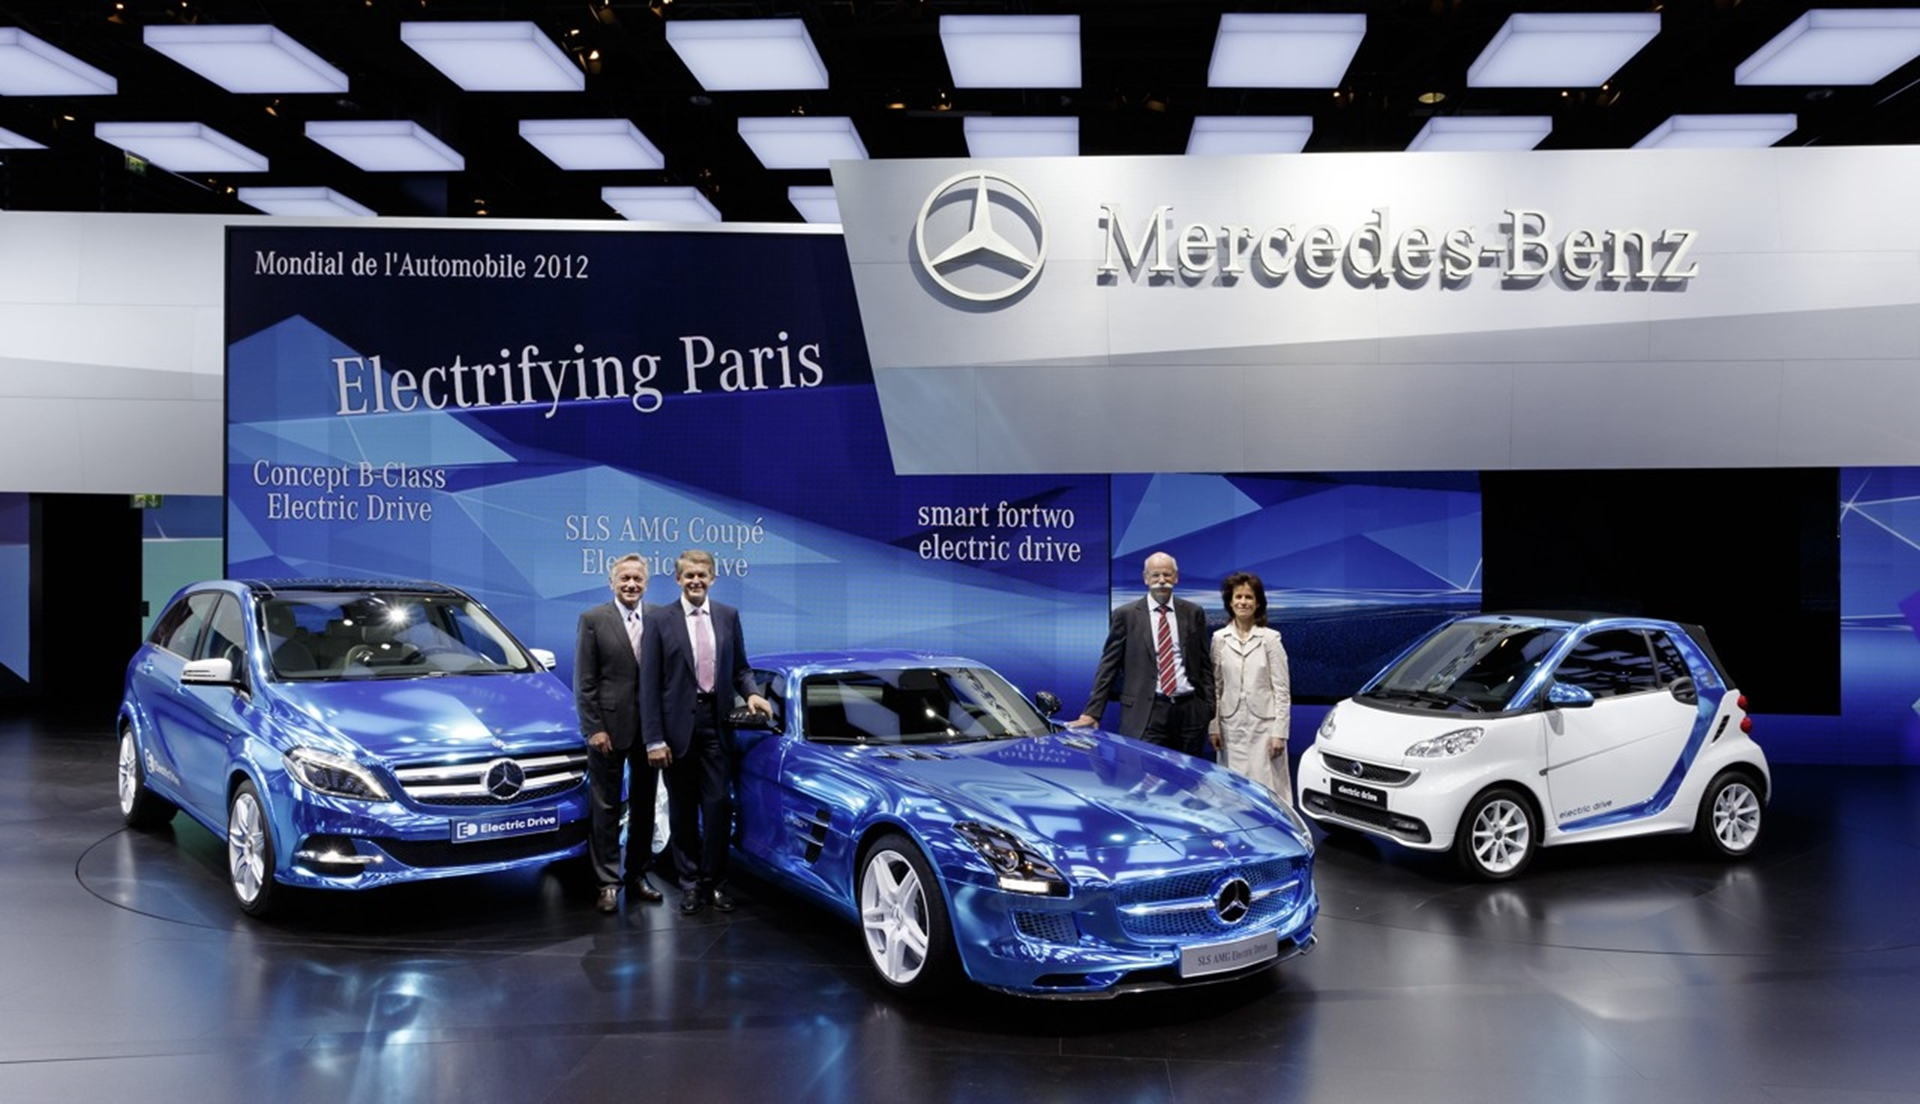 Mercedes benz and smart cars at the paris motor show - Mercedes car show ...